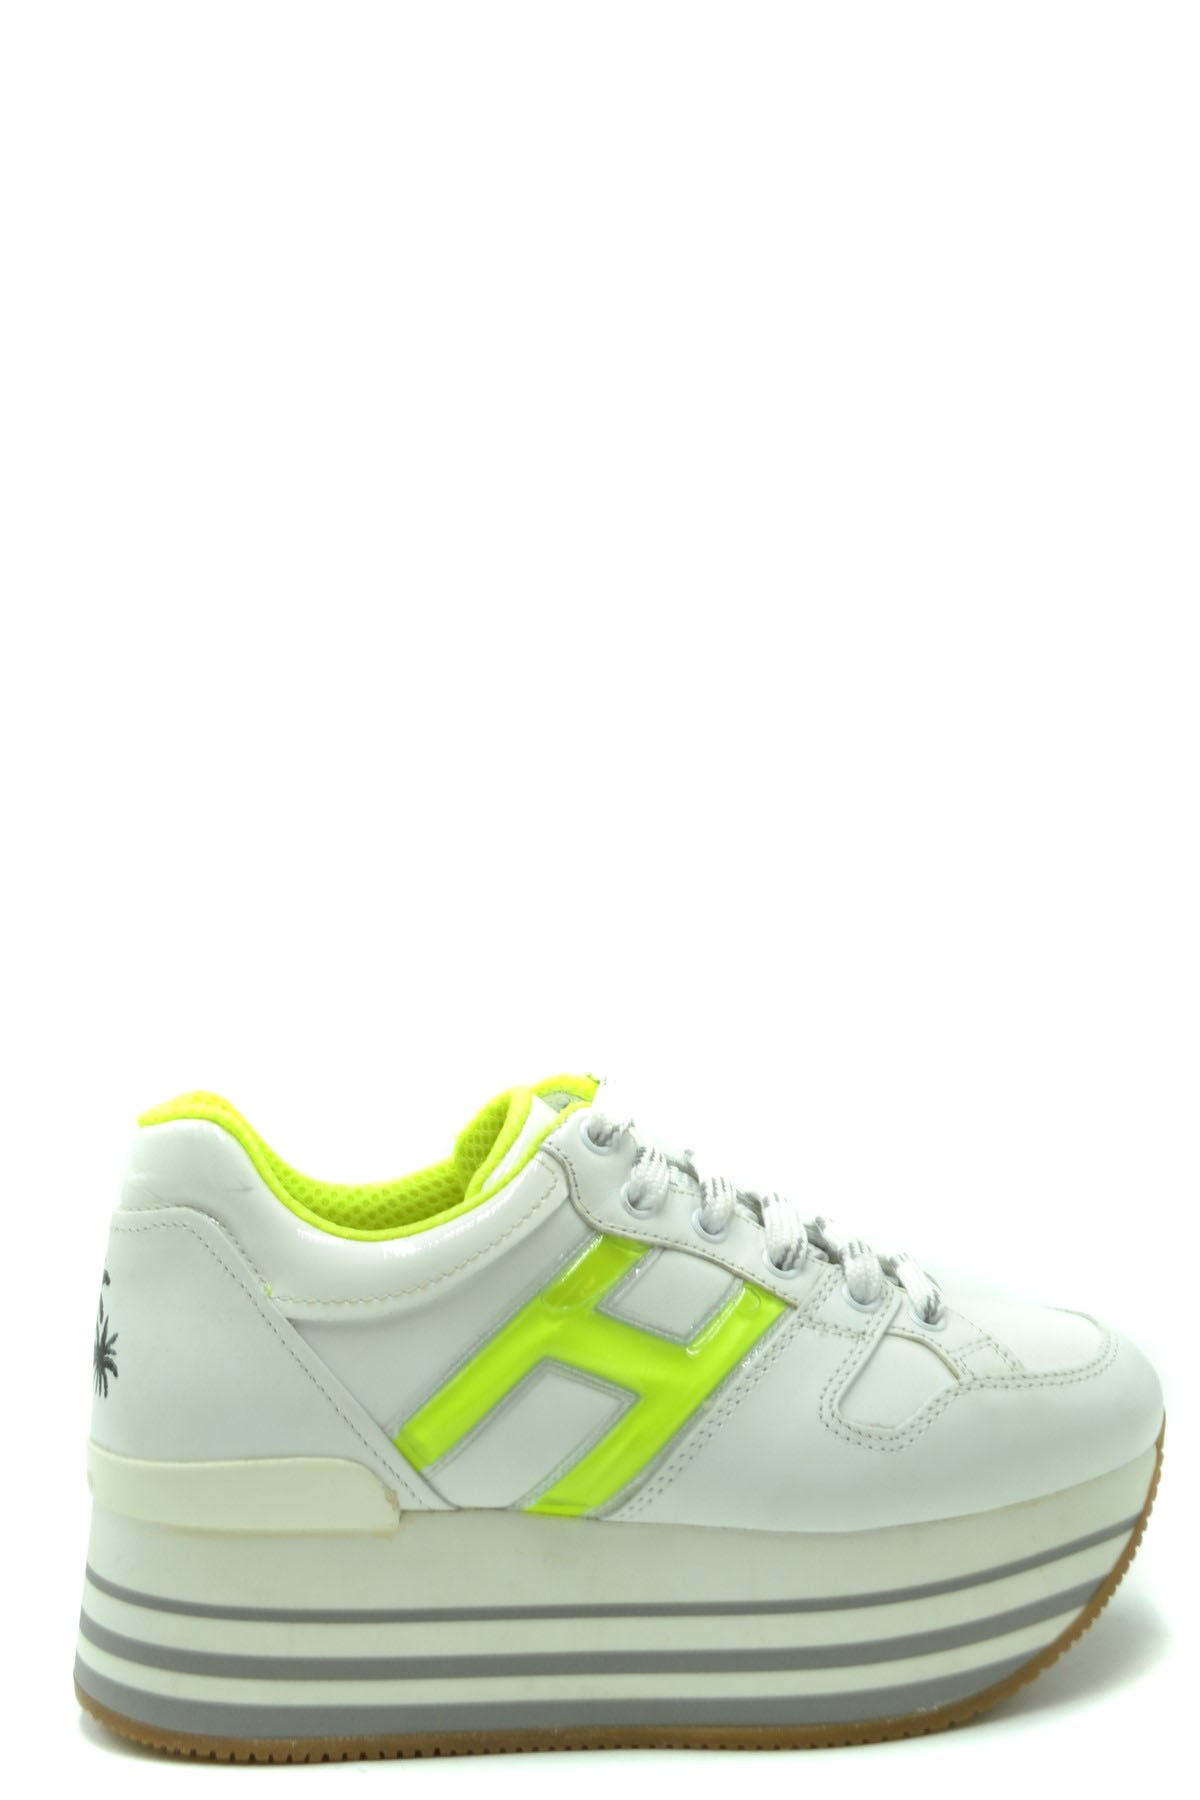 Shoes Hogan-Sports & Entertainment - Sneakers-35-Product Details Terms: New With LabelMain Color: WhiteType Of Accessory: ShoesSeason: Spring / SummerMade In: ItalyGender: WomanSize: EuComposition: Leather 100%Year: 2020Manufacturer Part Number: Hxw2830Bg50I6S9999-Keyomi-Sook